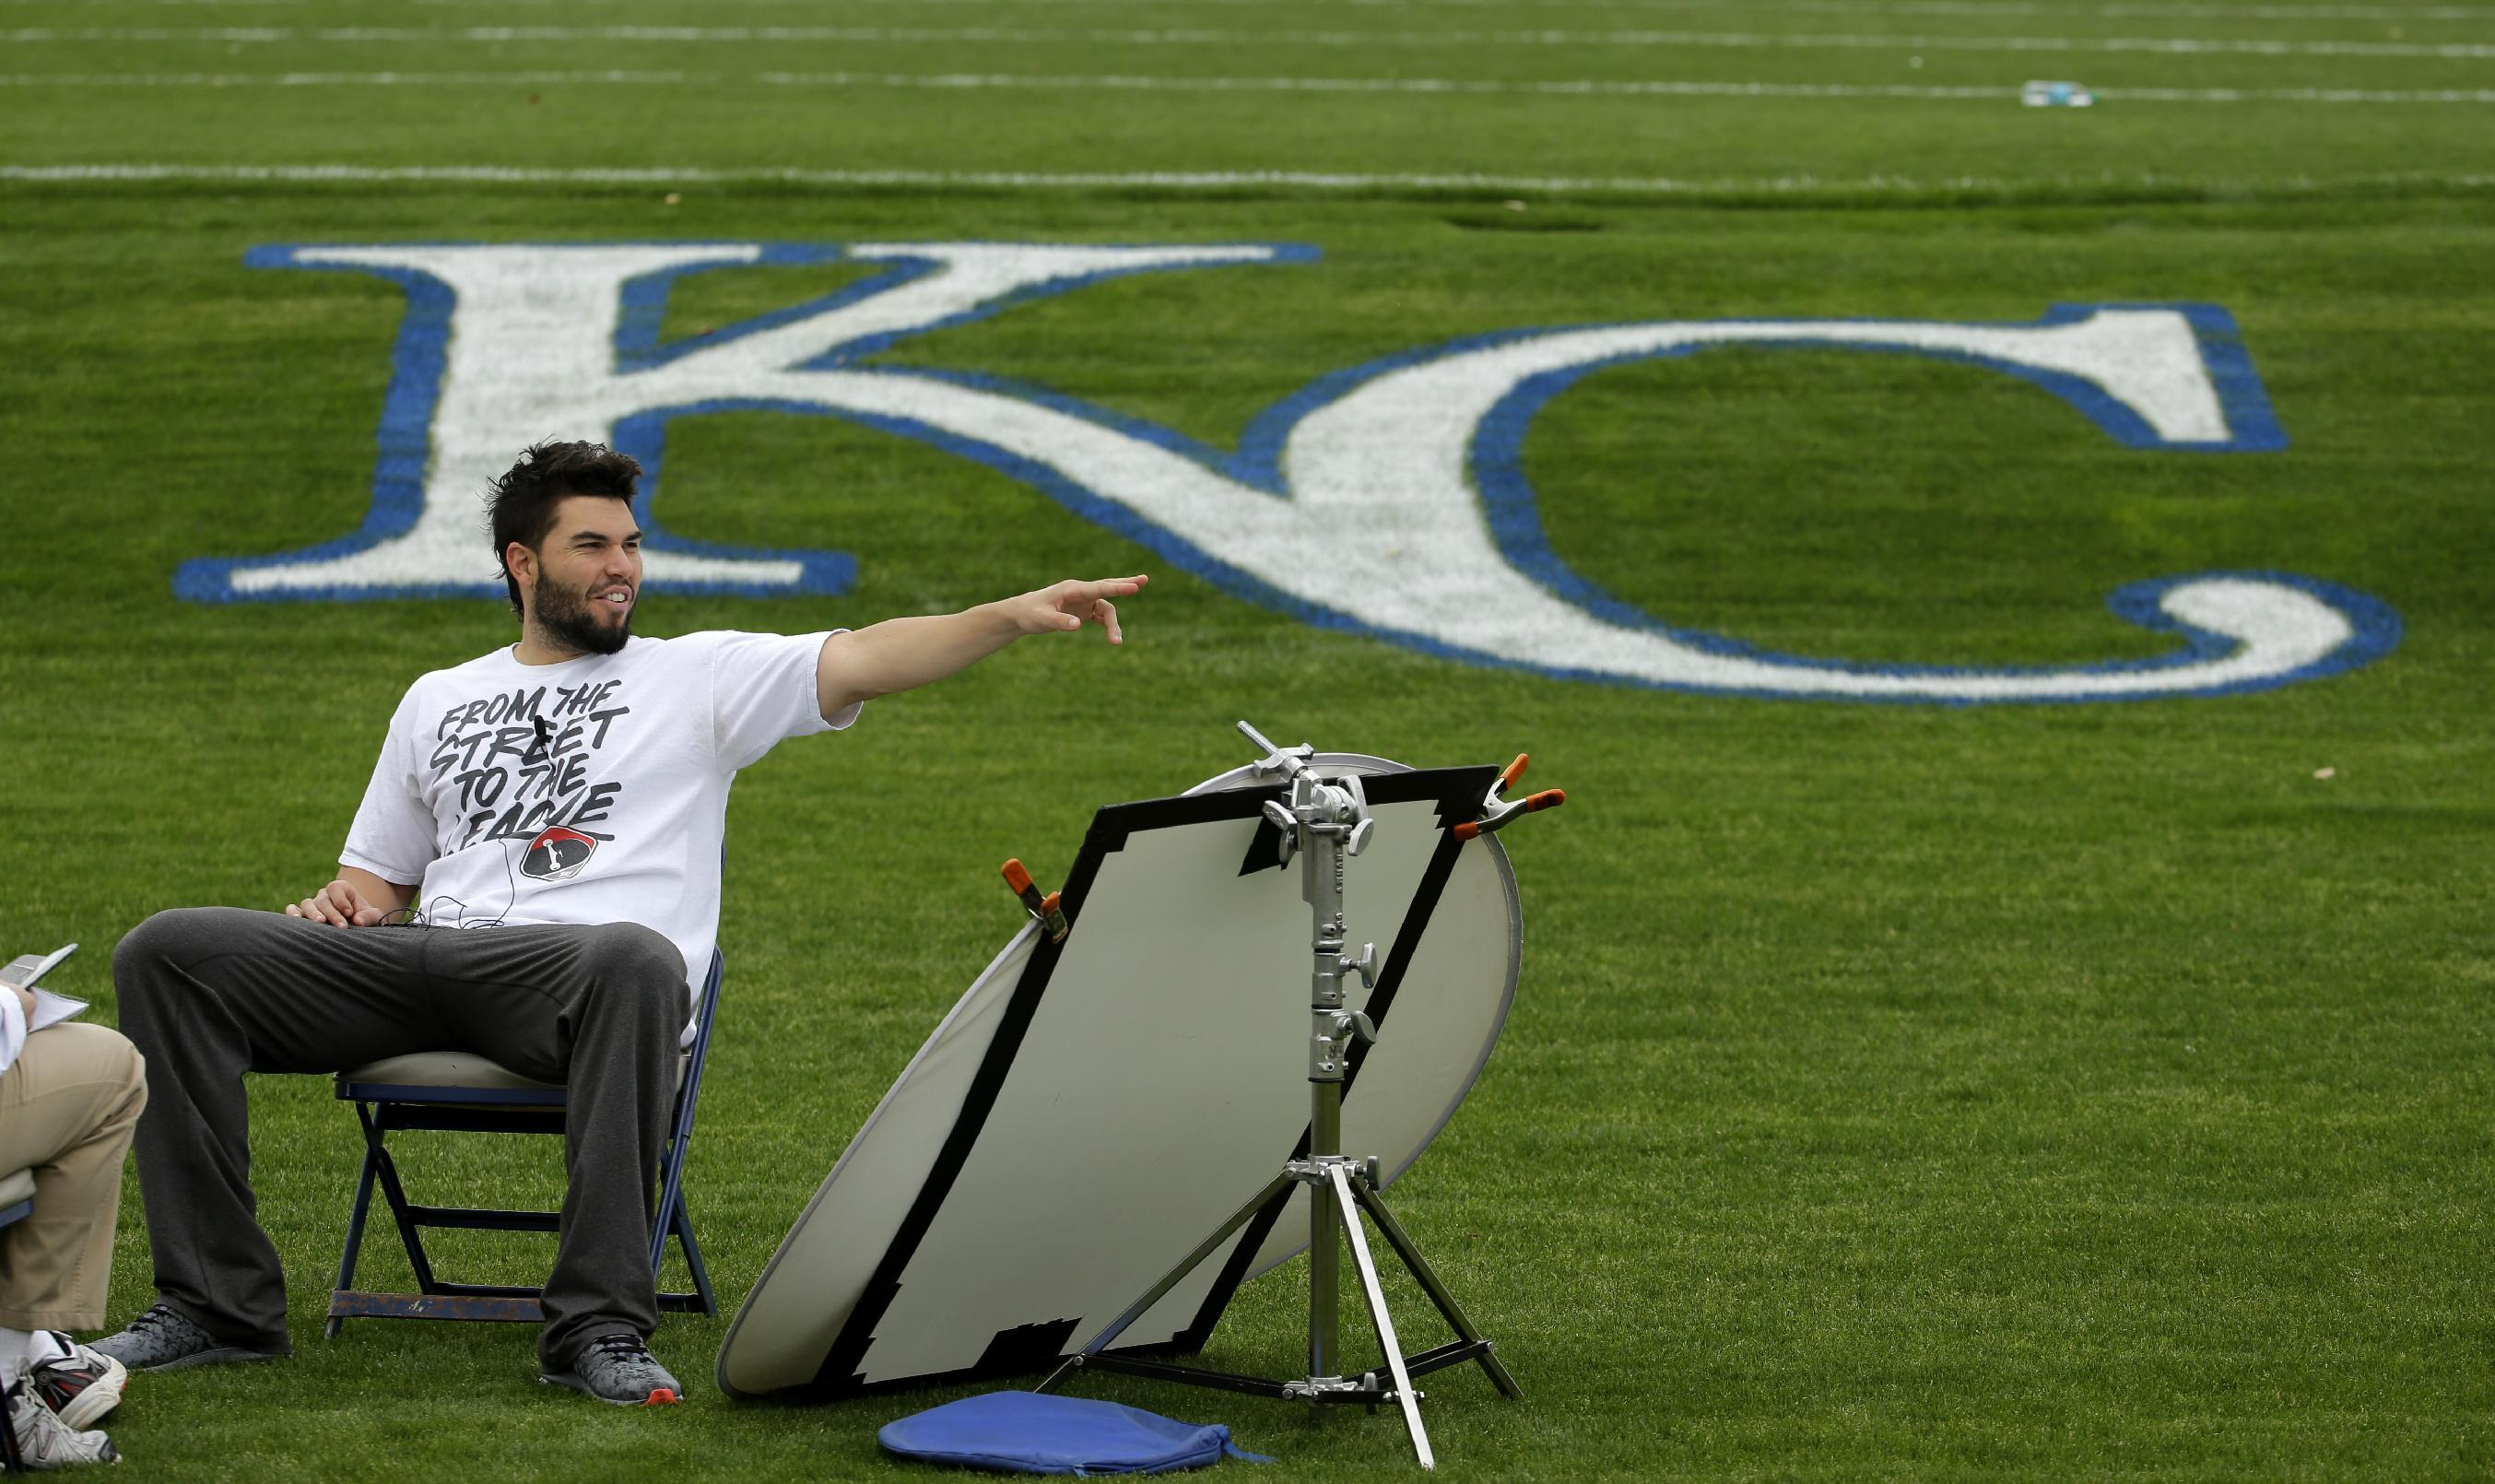 Royals 1B Hosmer hoping to build off postseason success